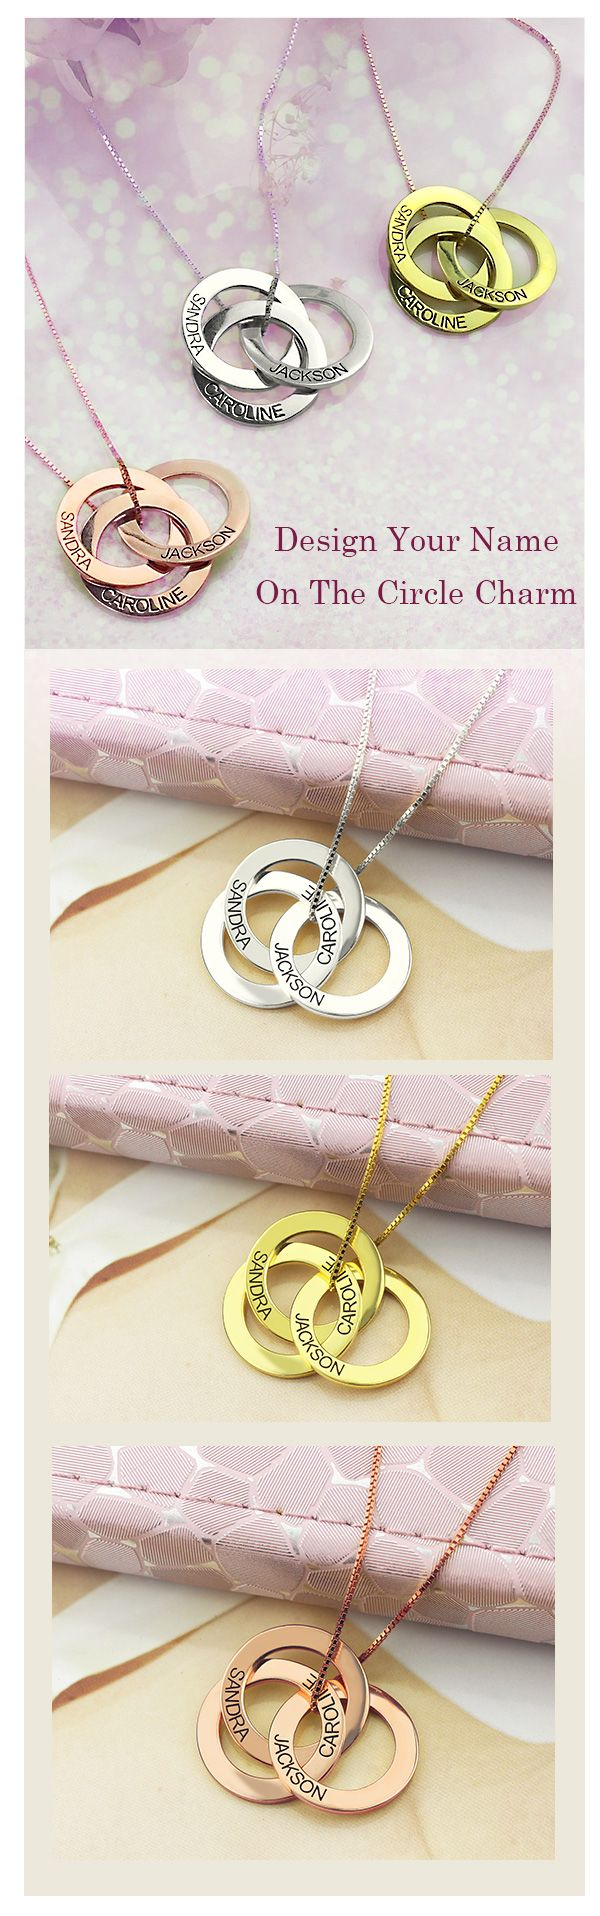 Engraved Russian Ring Necklace  Make Mother's Day unforgettable with the perfect gift! Design a Mom Ring Necklace especially for her, with engraving name of her loved one from getnamenecklace.com